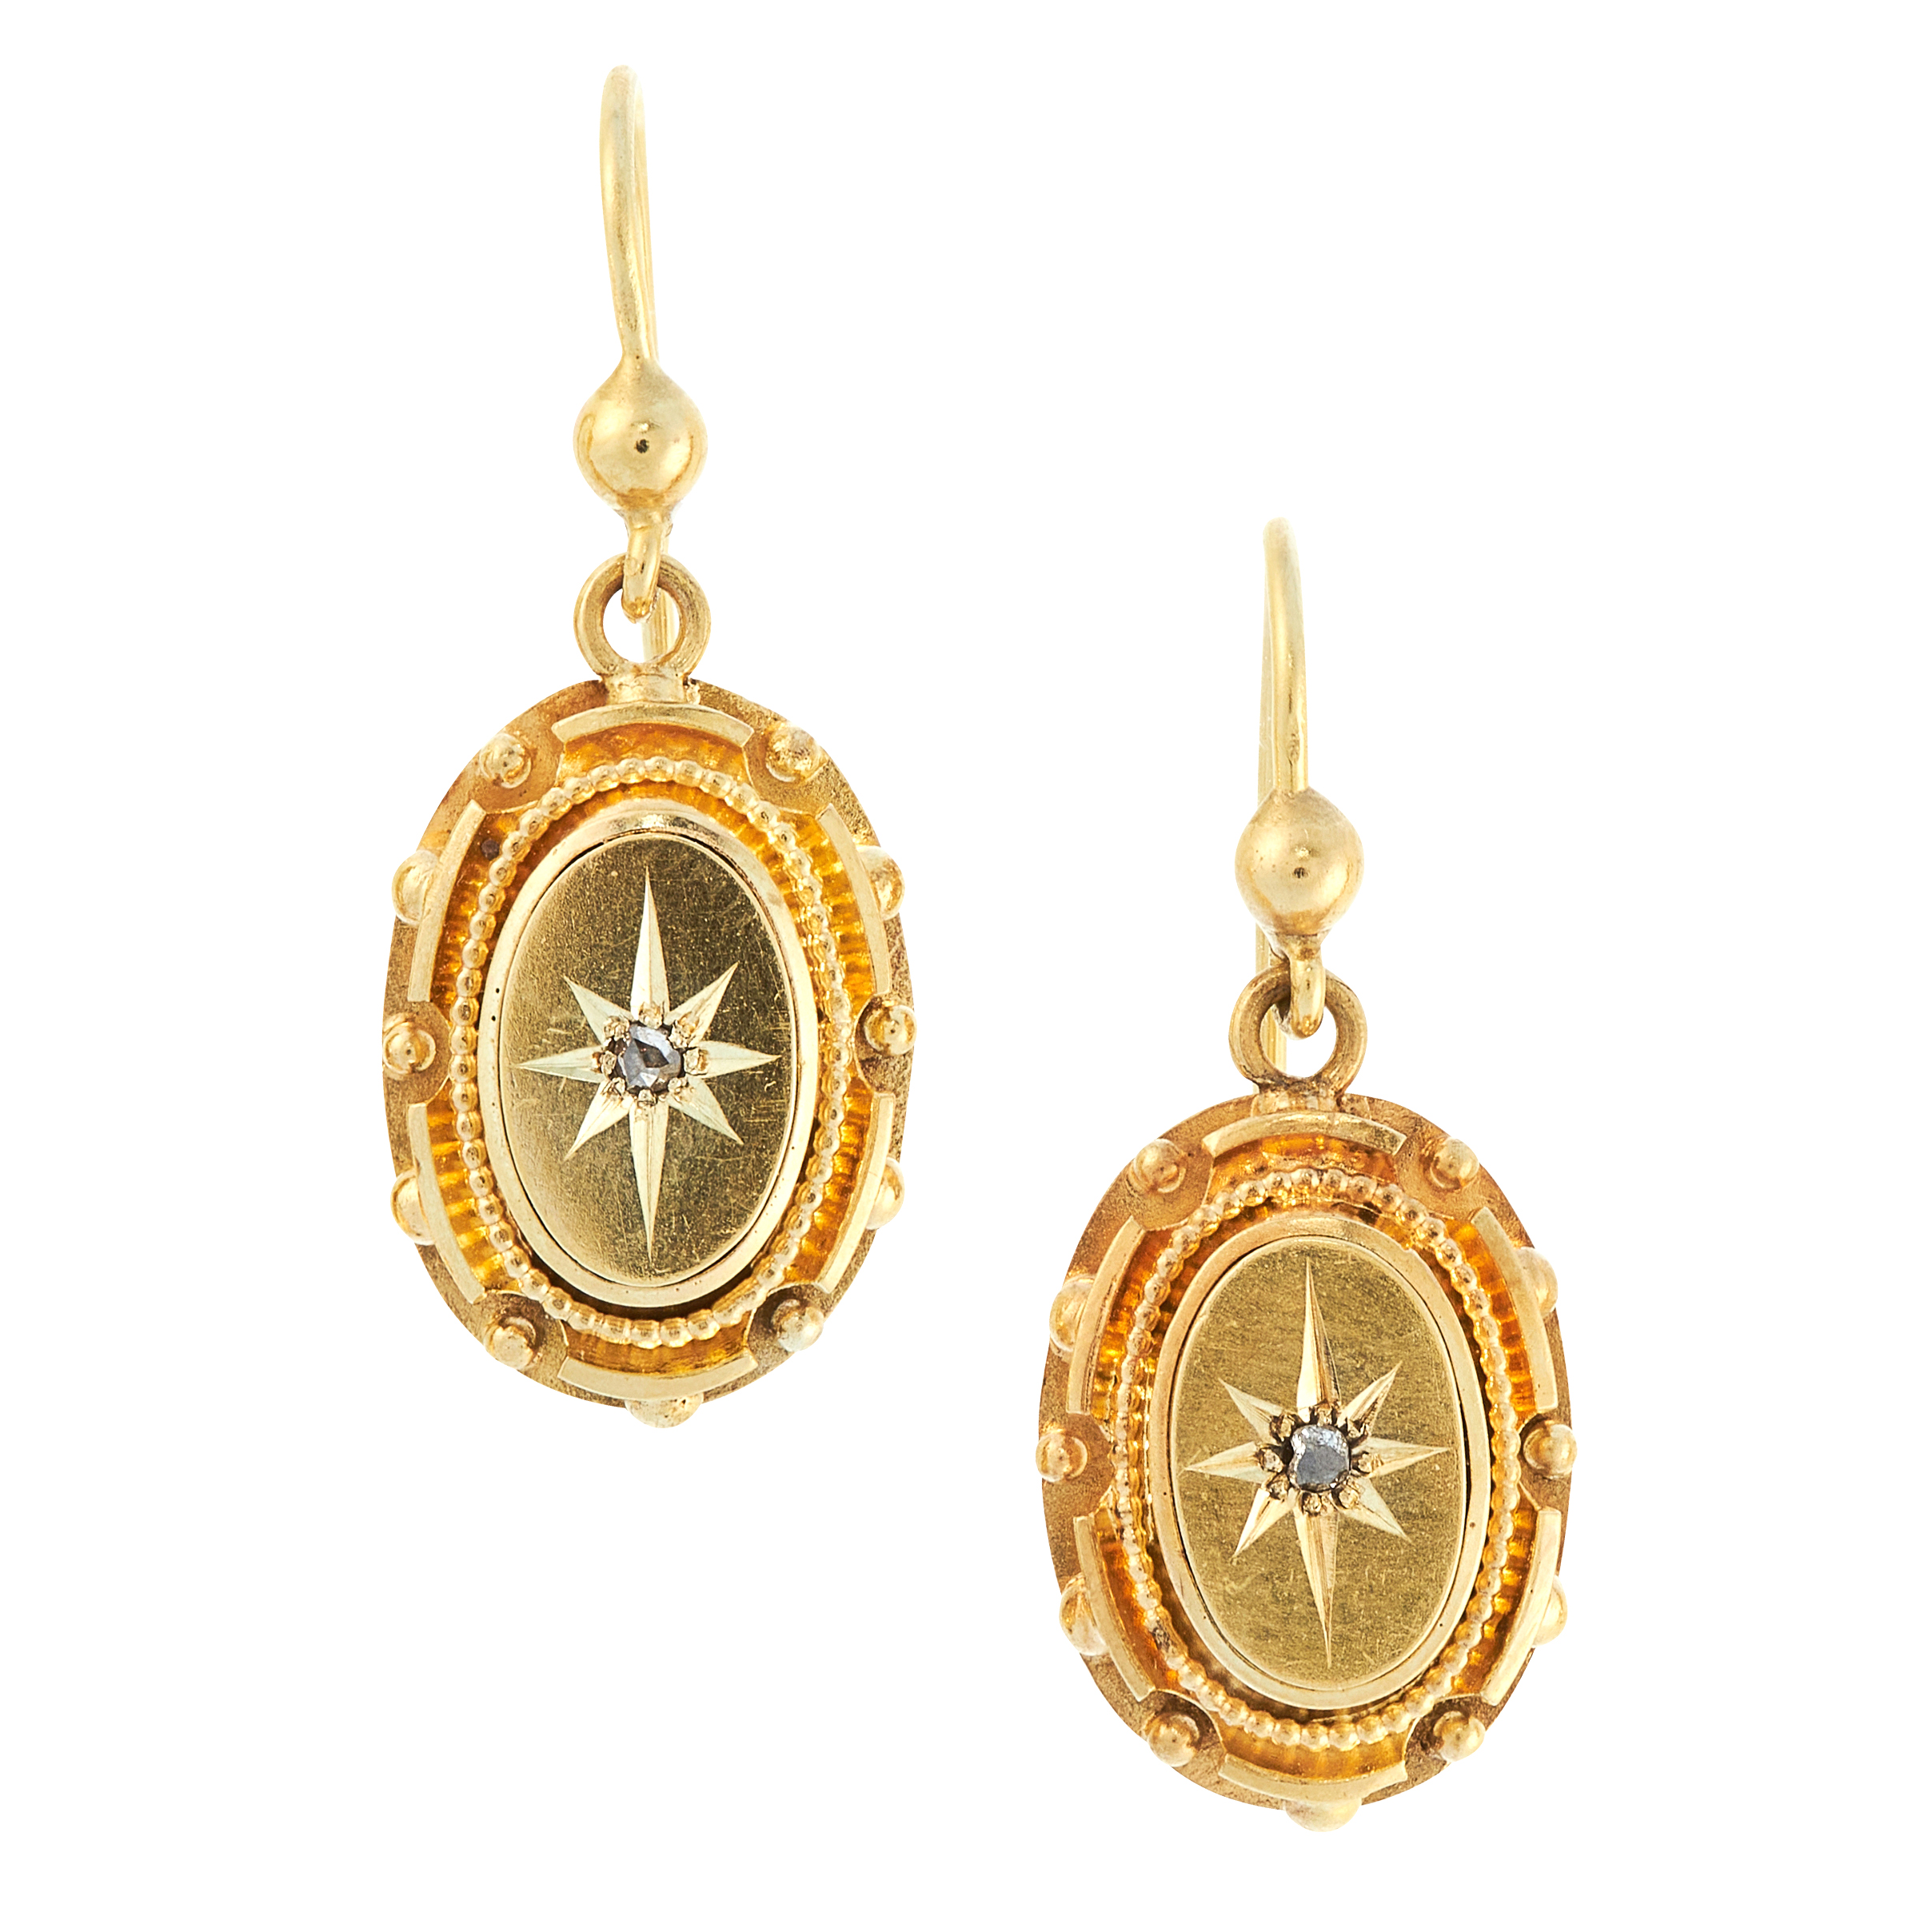 A PAIR OF ANTIQUE DIAMOND EARRINGS, 19TH CENTURY in 15ct yellow gold, the oval bodies set at the